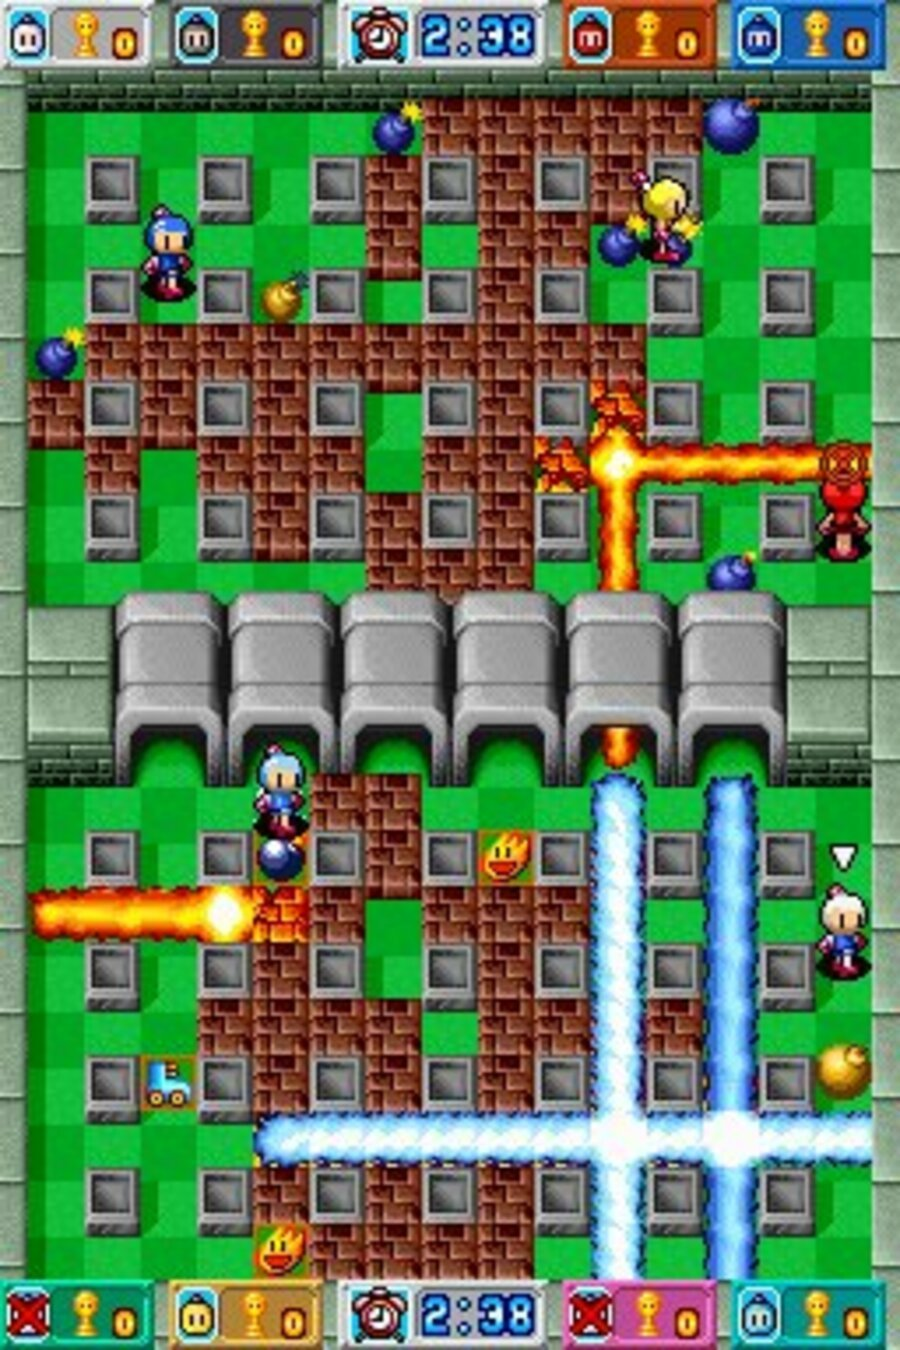 Bomberman 2 Screenshot